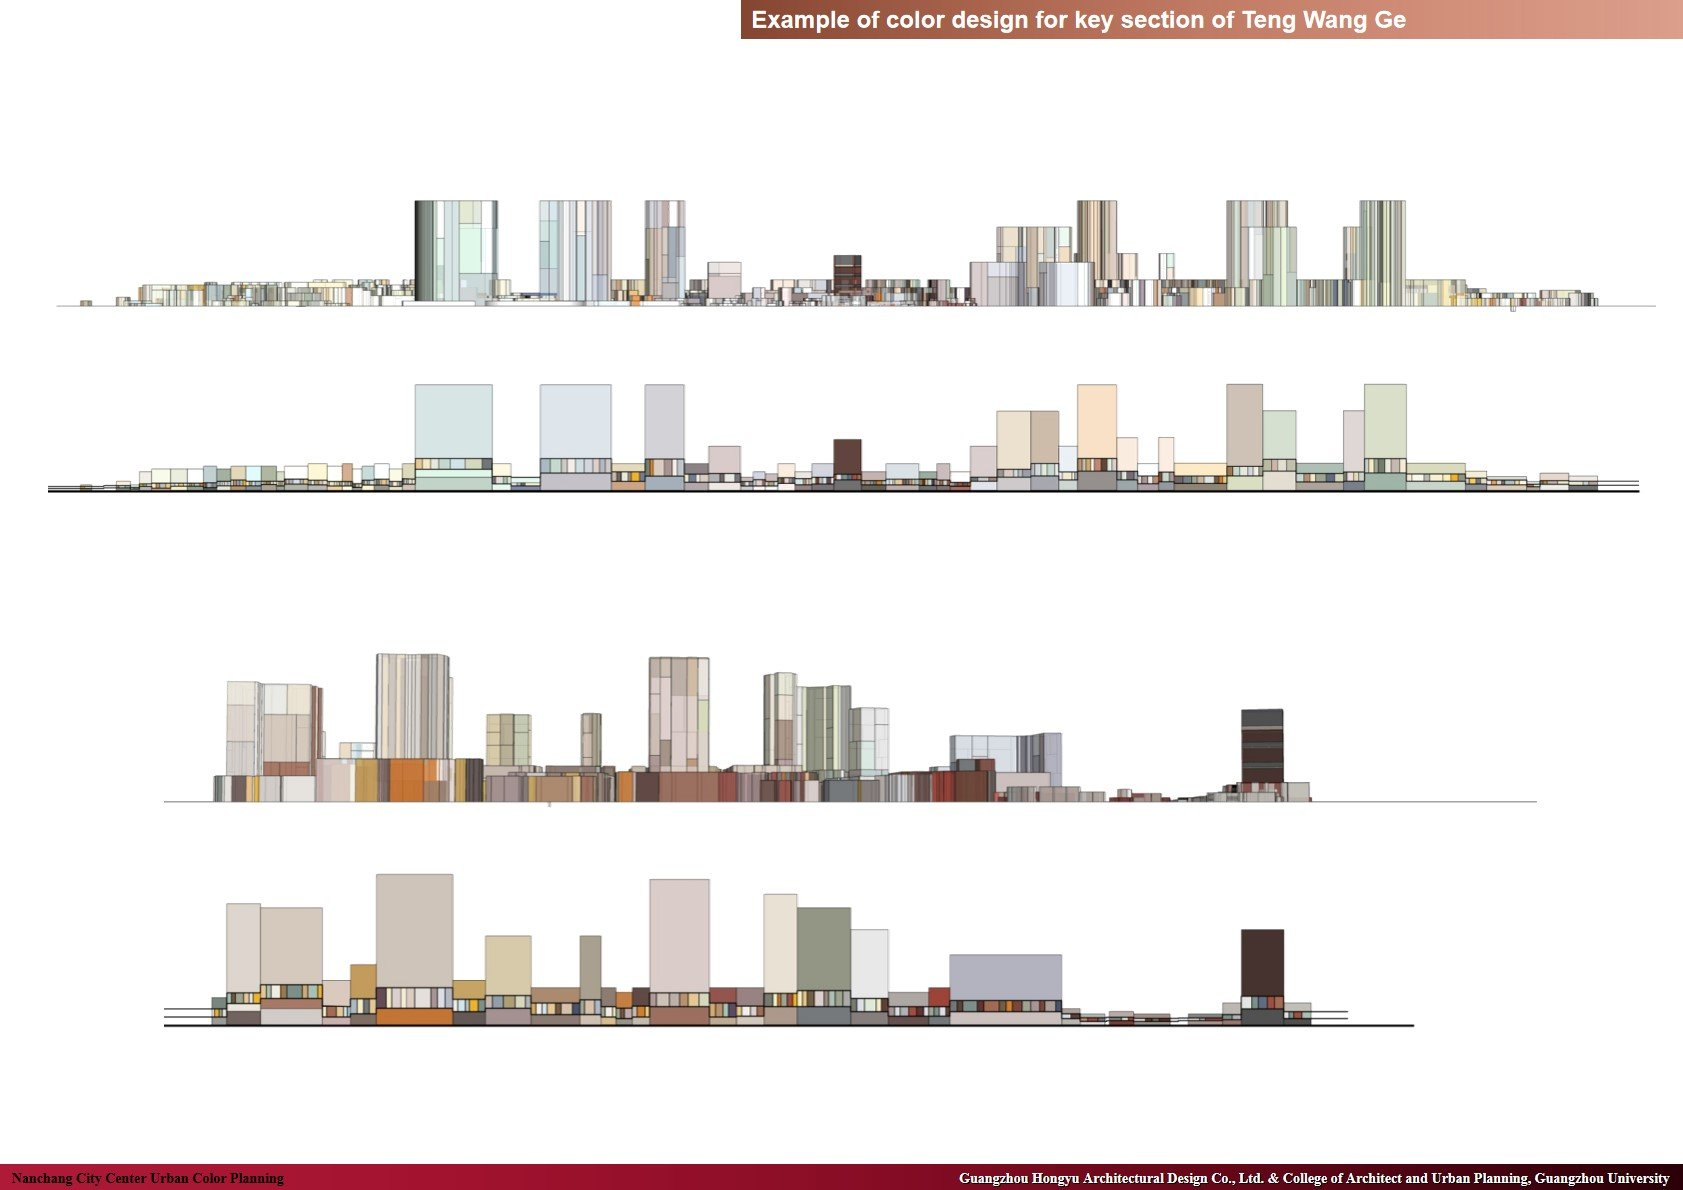 Example of color design for key section of Xiangshan street 1 Guangzhou Hongyu Architectural Design Co., Ltd. & College of Architect and Urban Planning, Guangzhou Universityet 1}